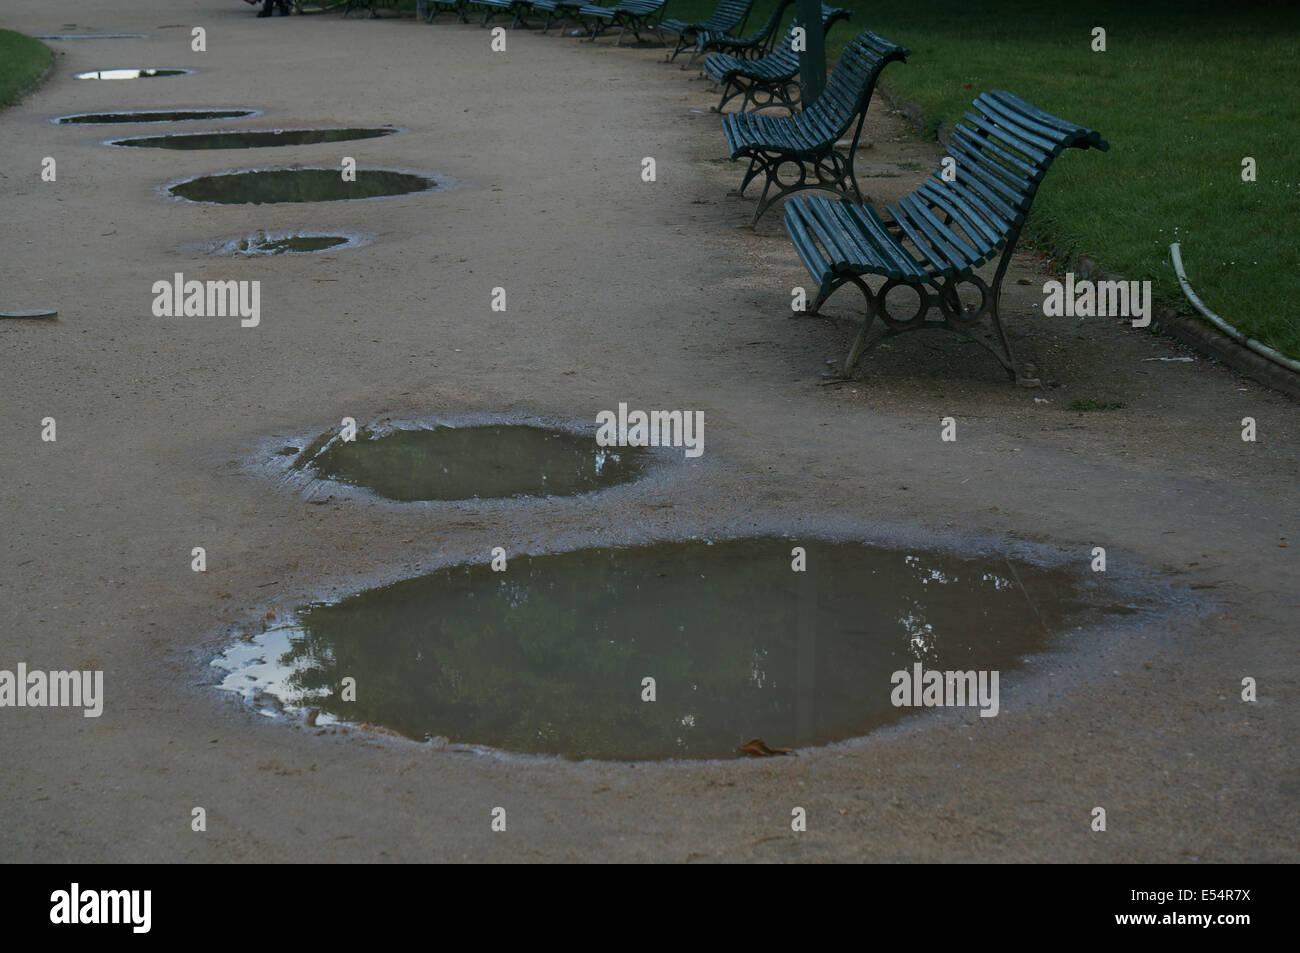 Puddles reflect trees with a line of seats after rain wait in Jardin des Champs Elysees Paris - Stock Image